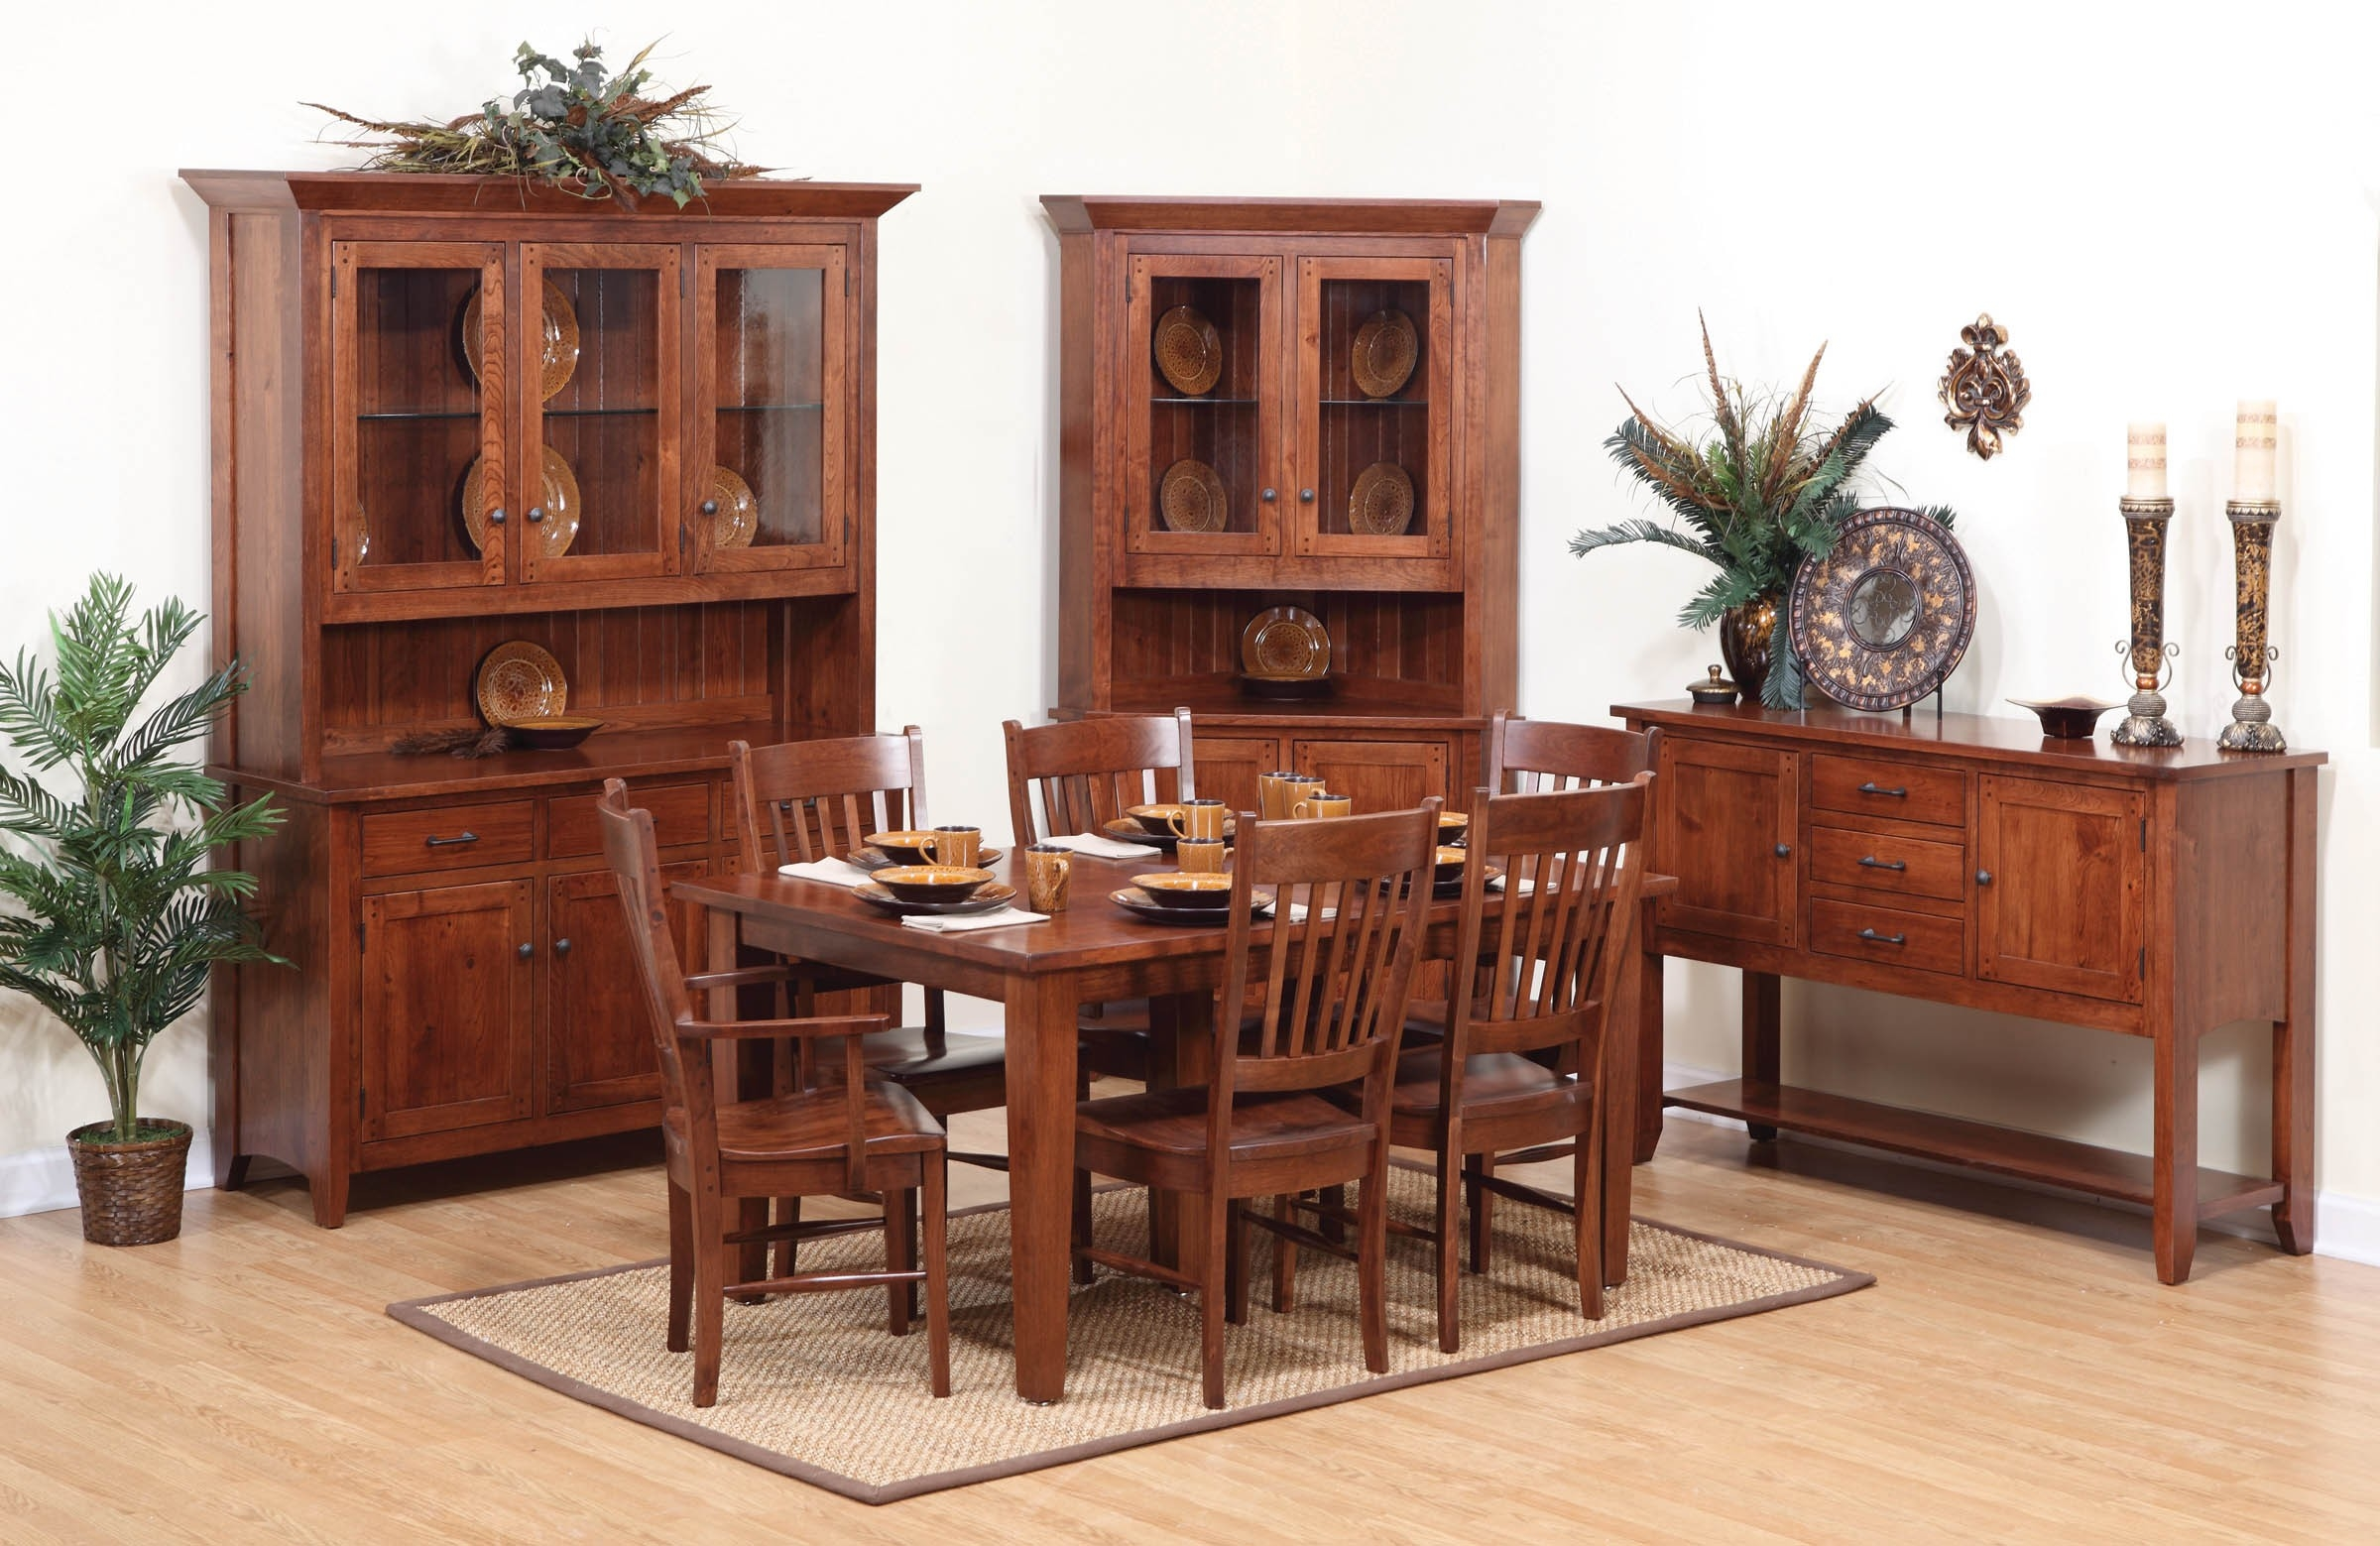 Gish 39 S Furniture And Amish Heirlooms In Lancaster PA 17602 ChamberofCo